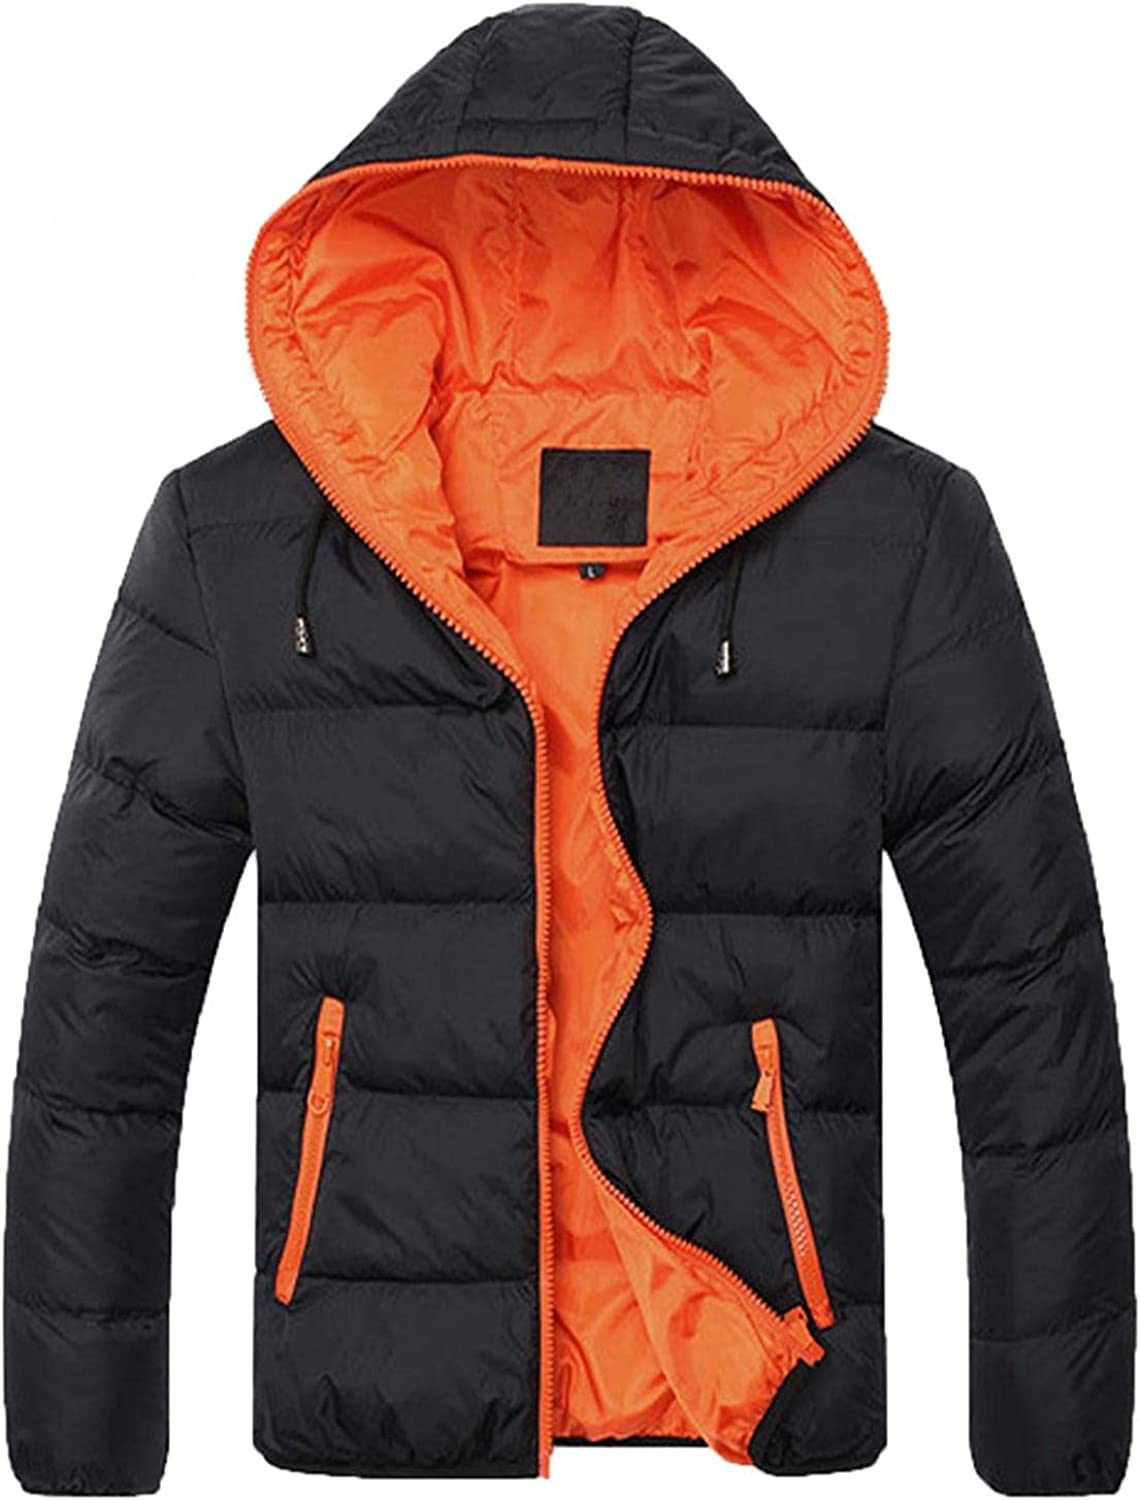 Men's Max 78% OFF Lightweight Puffer Jackets Hoodie Do Slim Fit Thermal low-pricing Warm